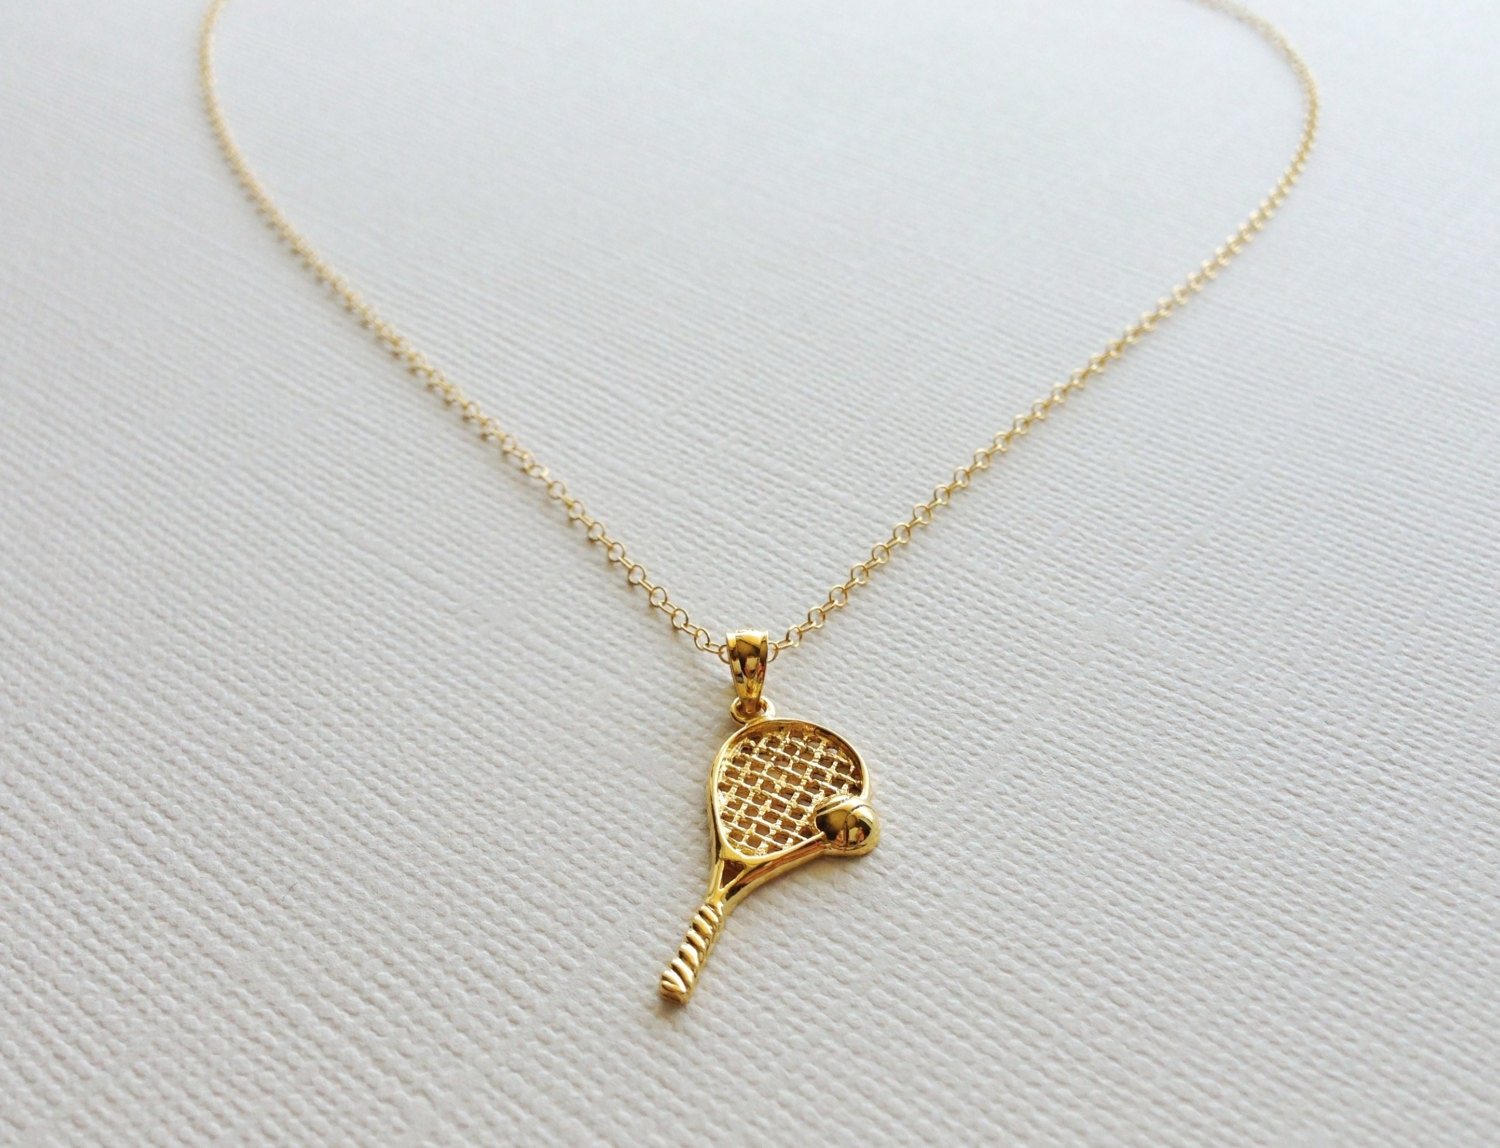 Tennis racket necklace in sterling silver 18k yellow gold zoom mozeypictures Choice Image